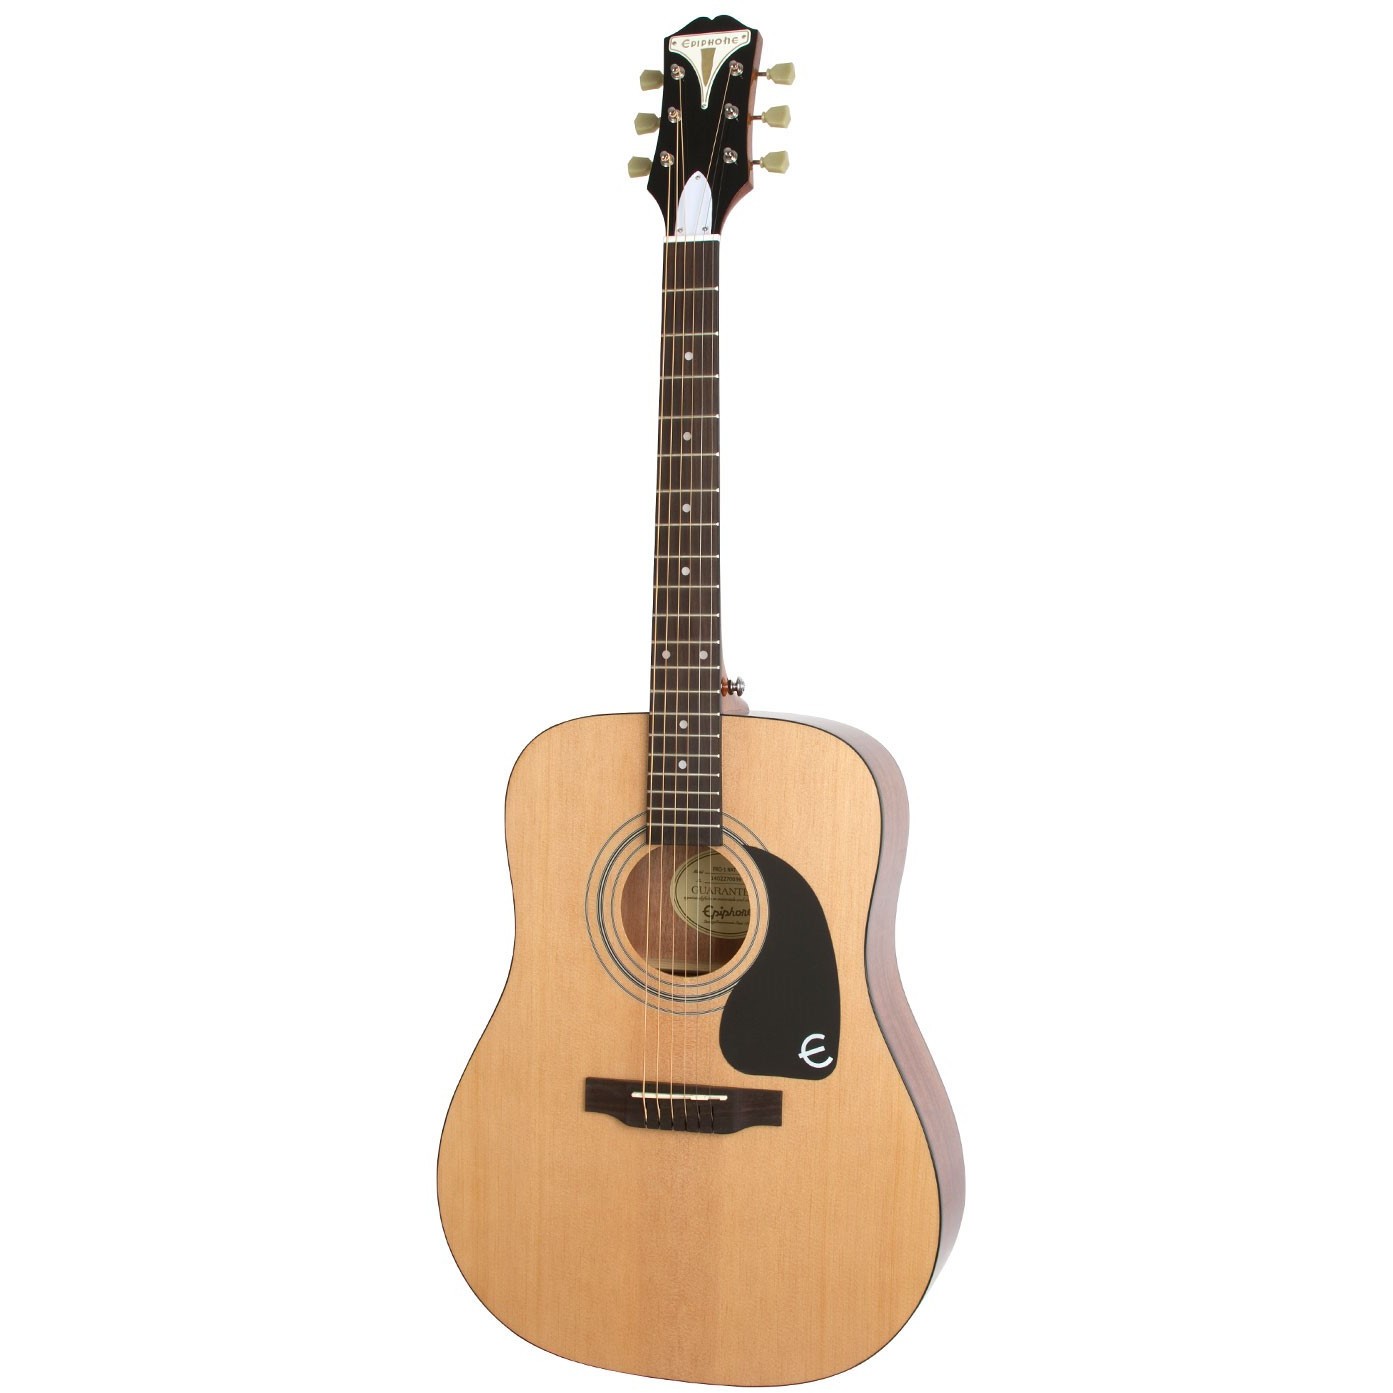 Epiphone Pro 1 Acoustic acoustic steel string guitar, natural